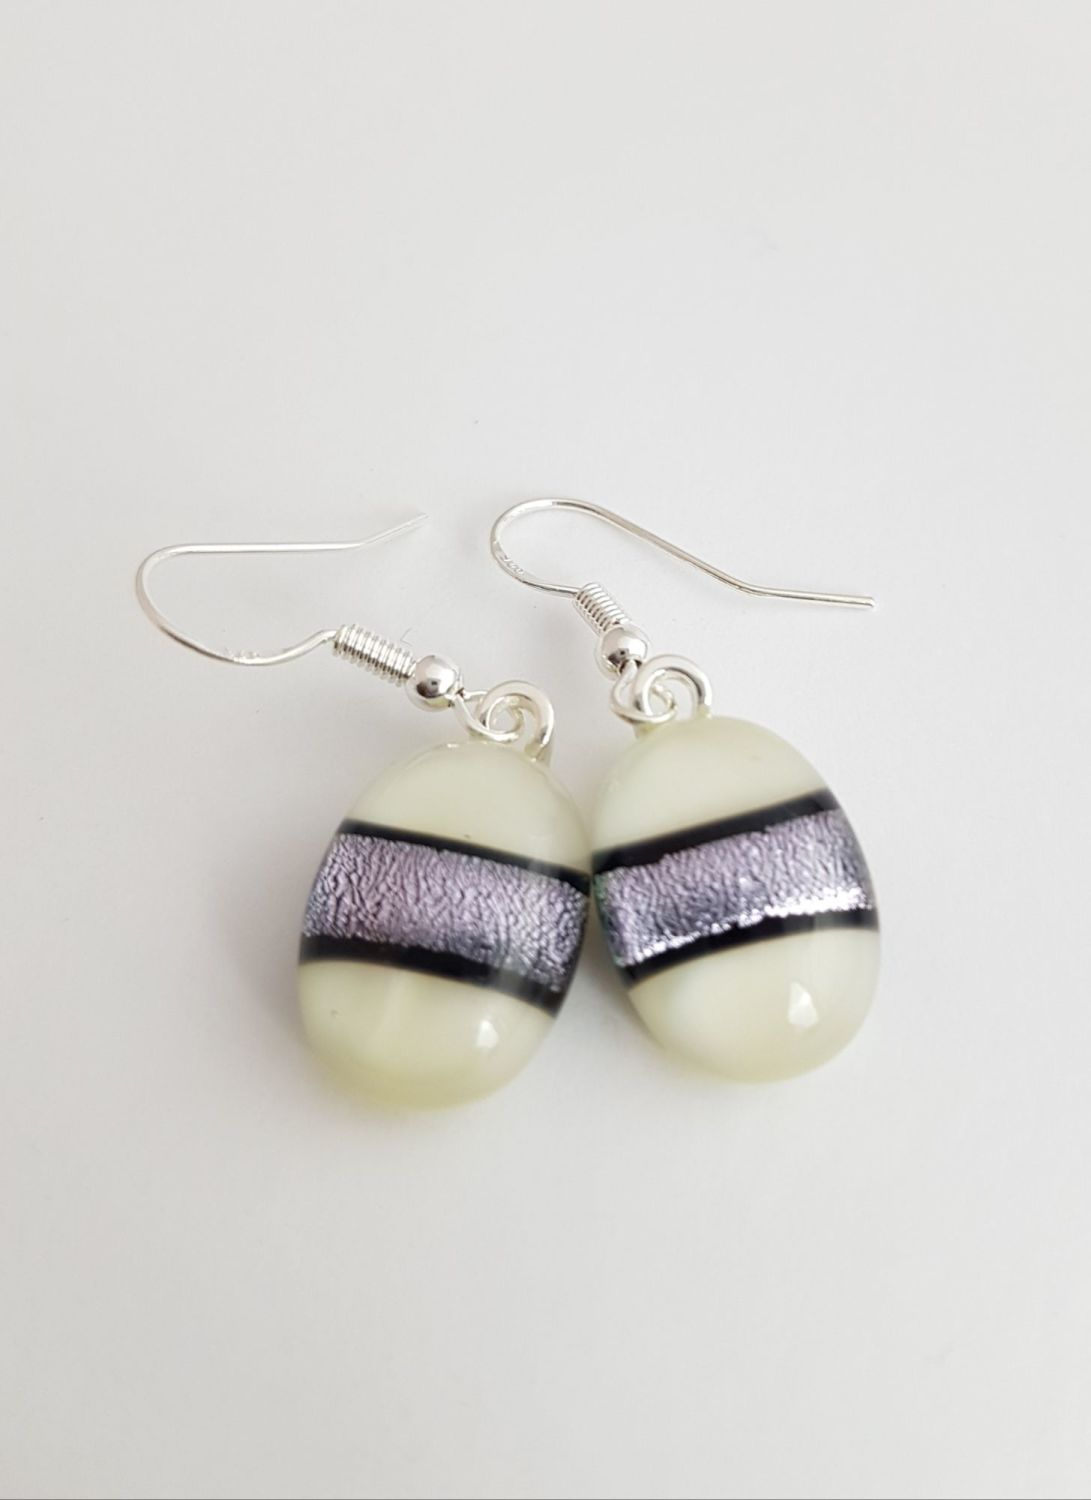 Dichroic stripe - Ivory with silver sparkly stripe drop earrings